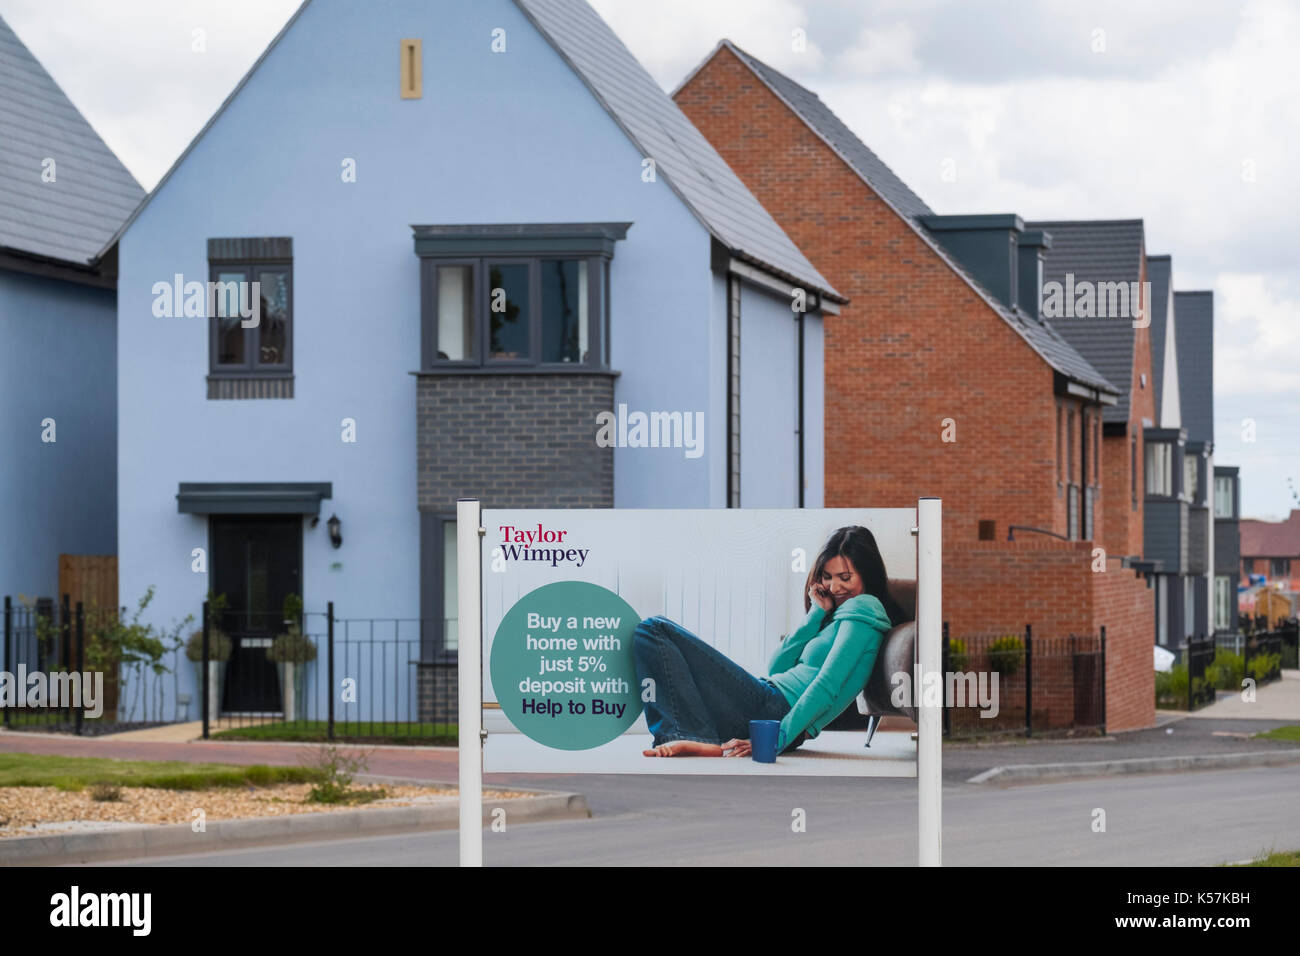 Taylor Wimpey housing development with Help to Buy advert at Lawley Village, Telford, Shropshire, UK - Stock Image